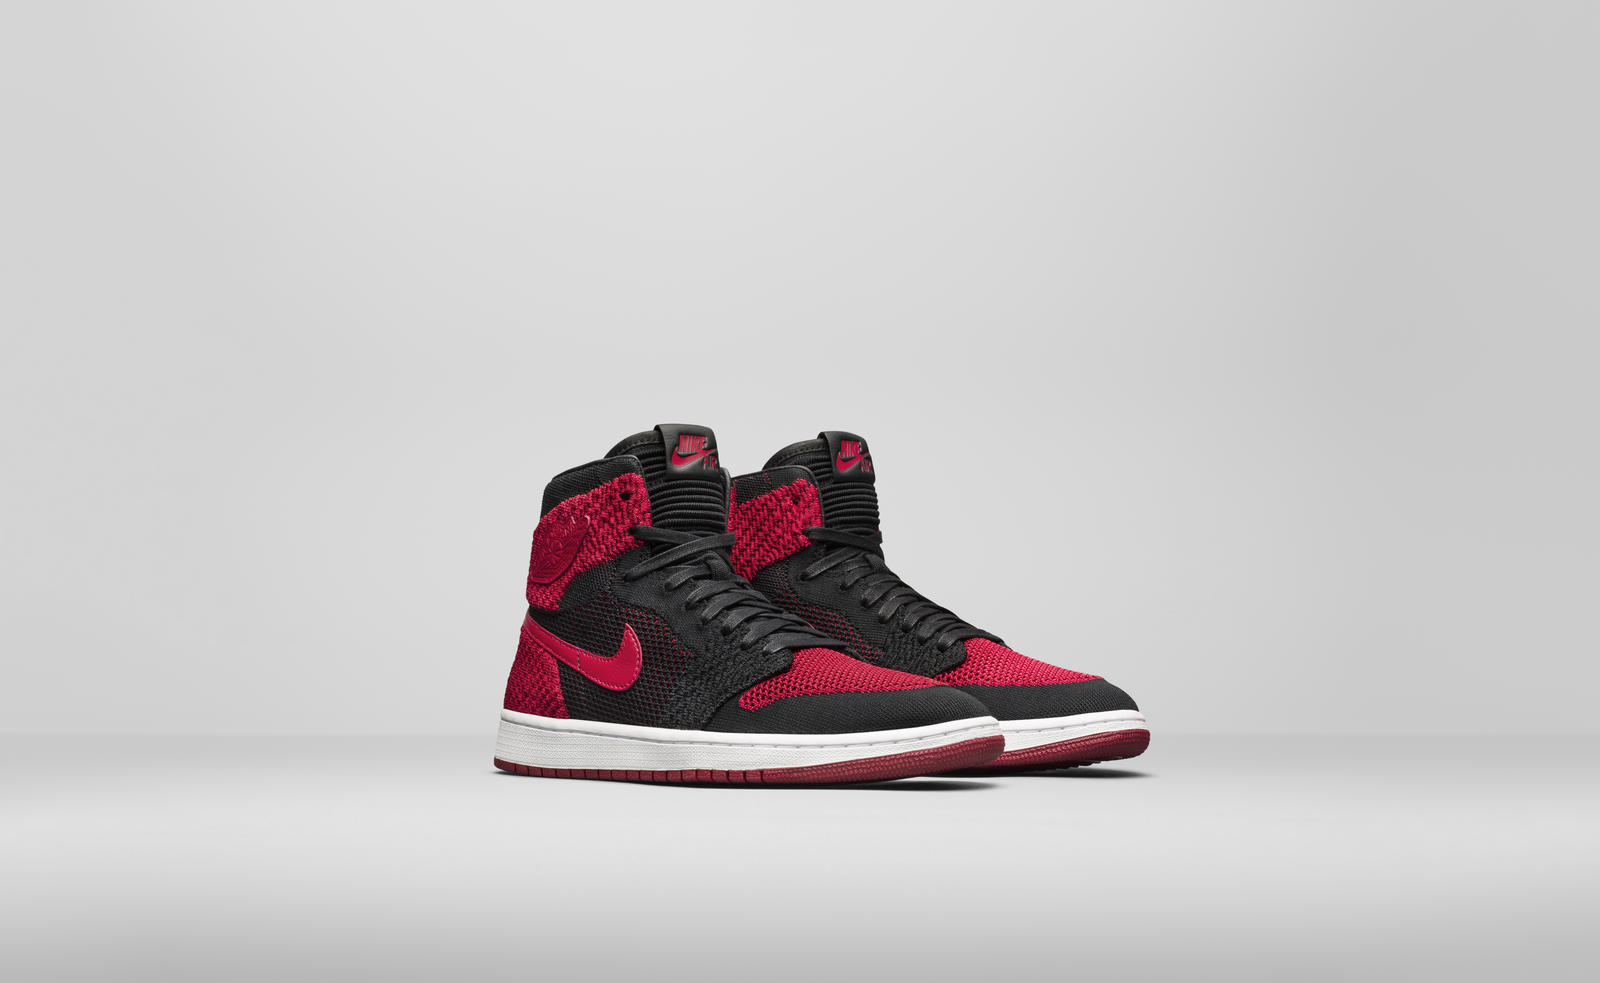 130817cd806c Jordan Brand Introduces the Air Jordan 1 Retro Hi Flyknit - Nike News